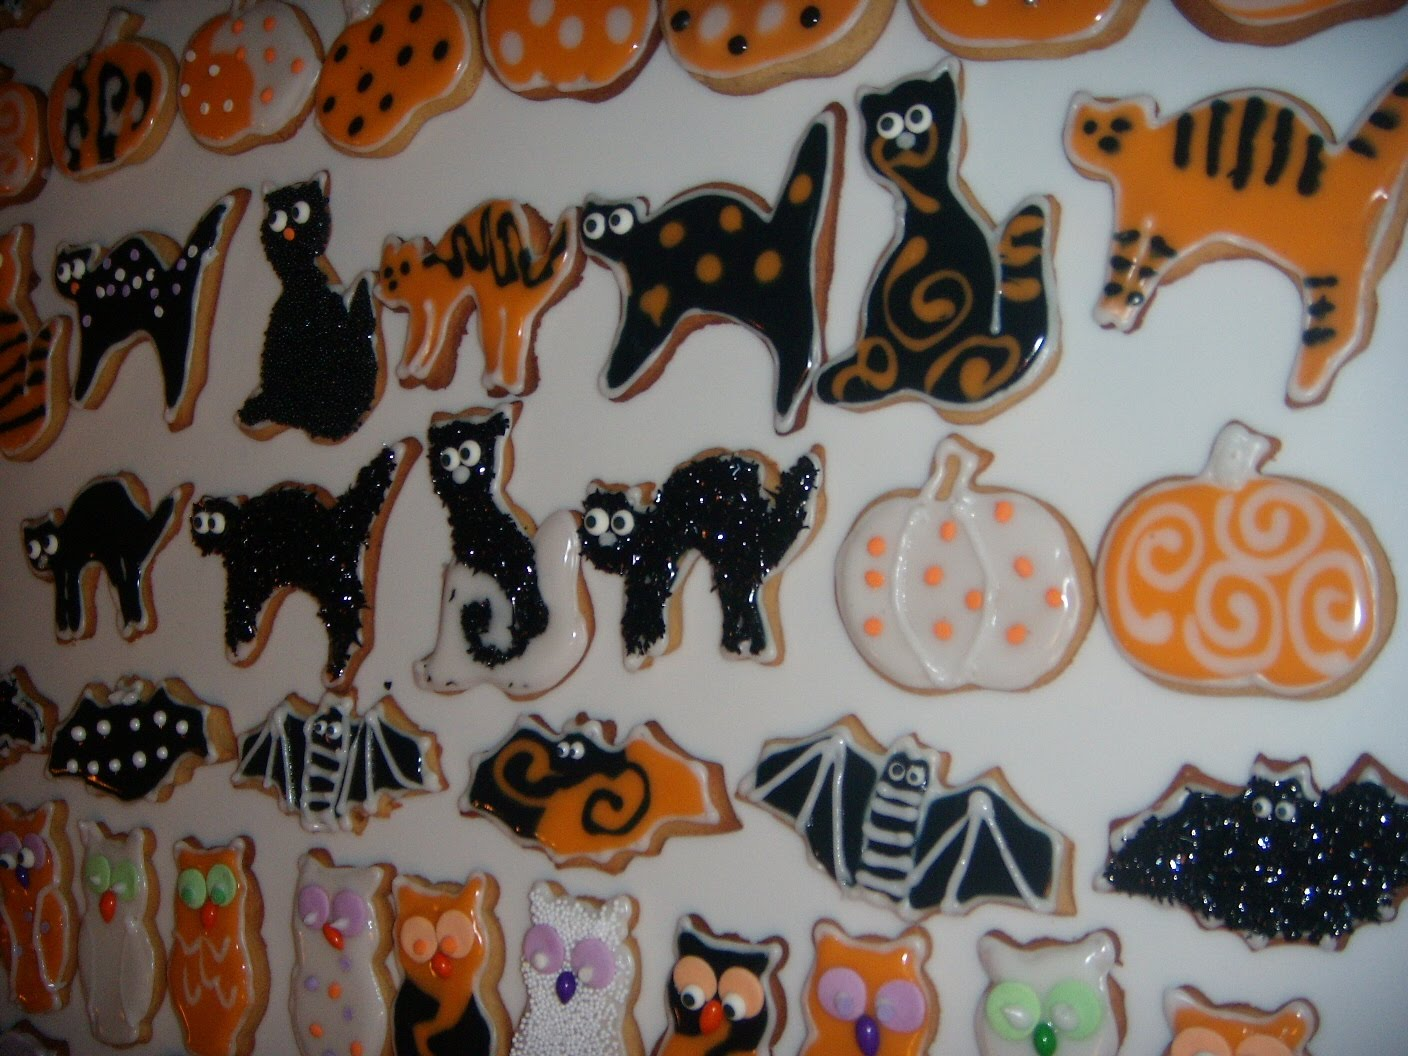 cookie decorating ideas - Halloween Cookies Decorating Ideas